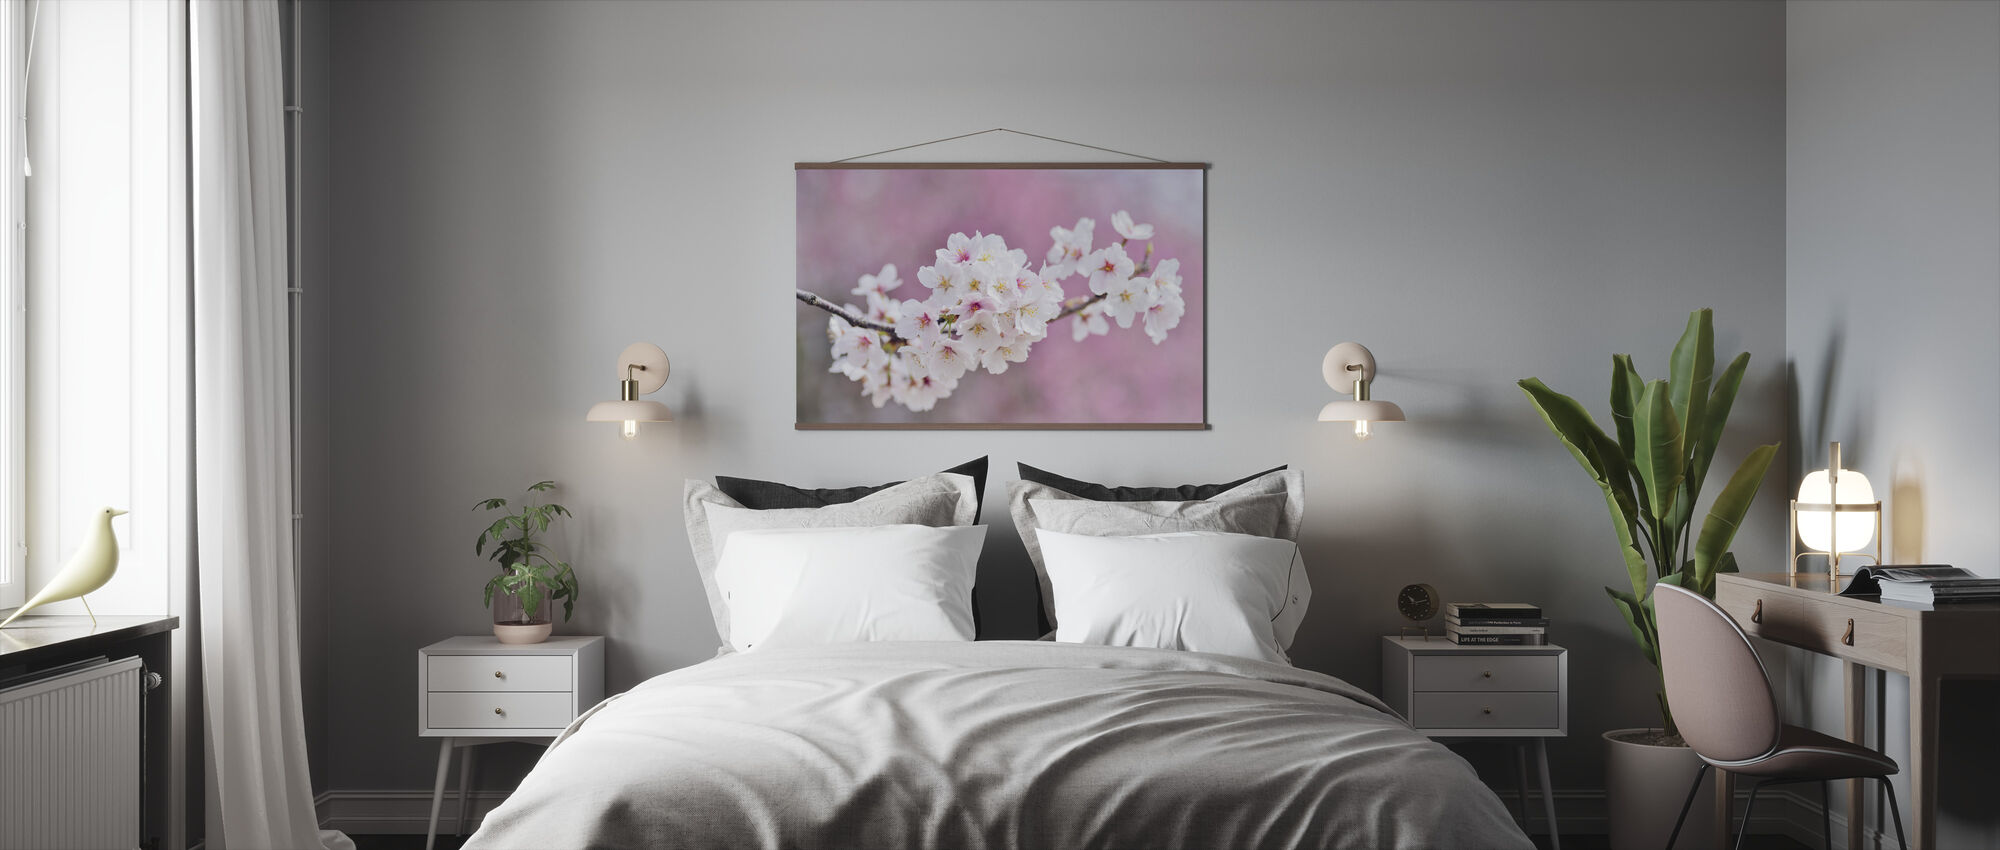 Beautiful Cherry Blossoms - Poster - Bedroom